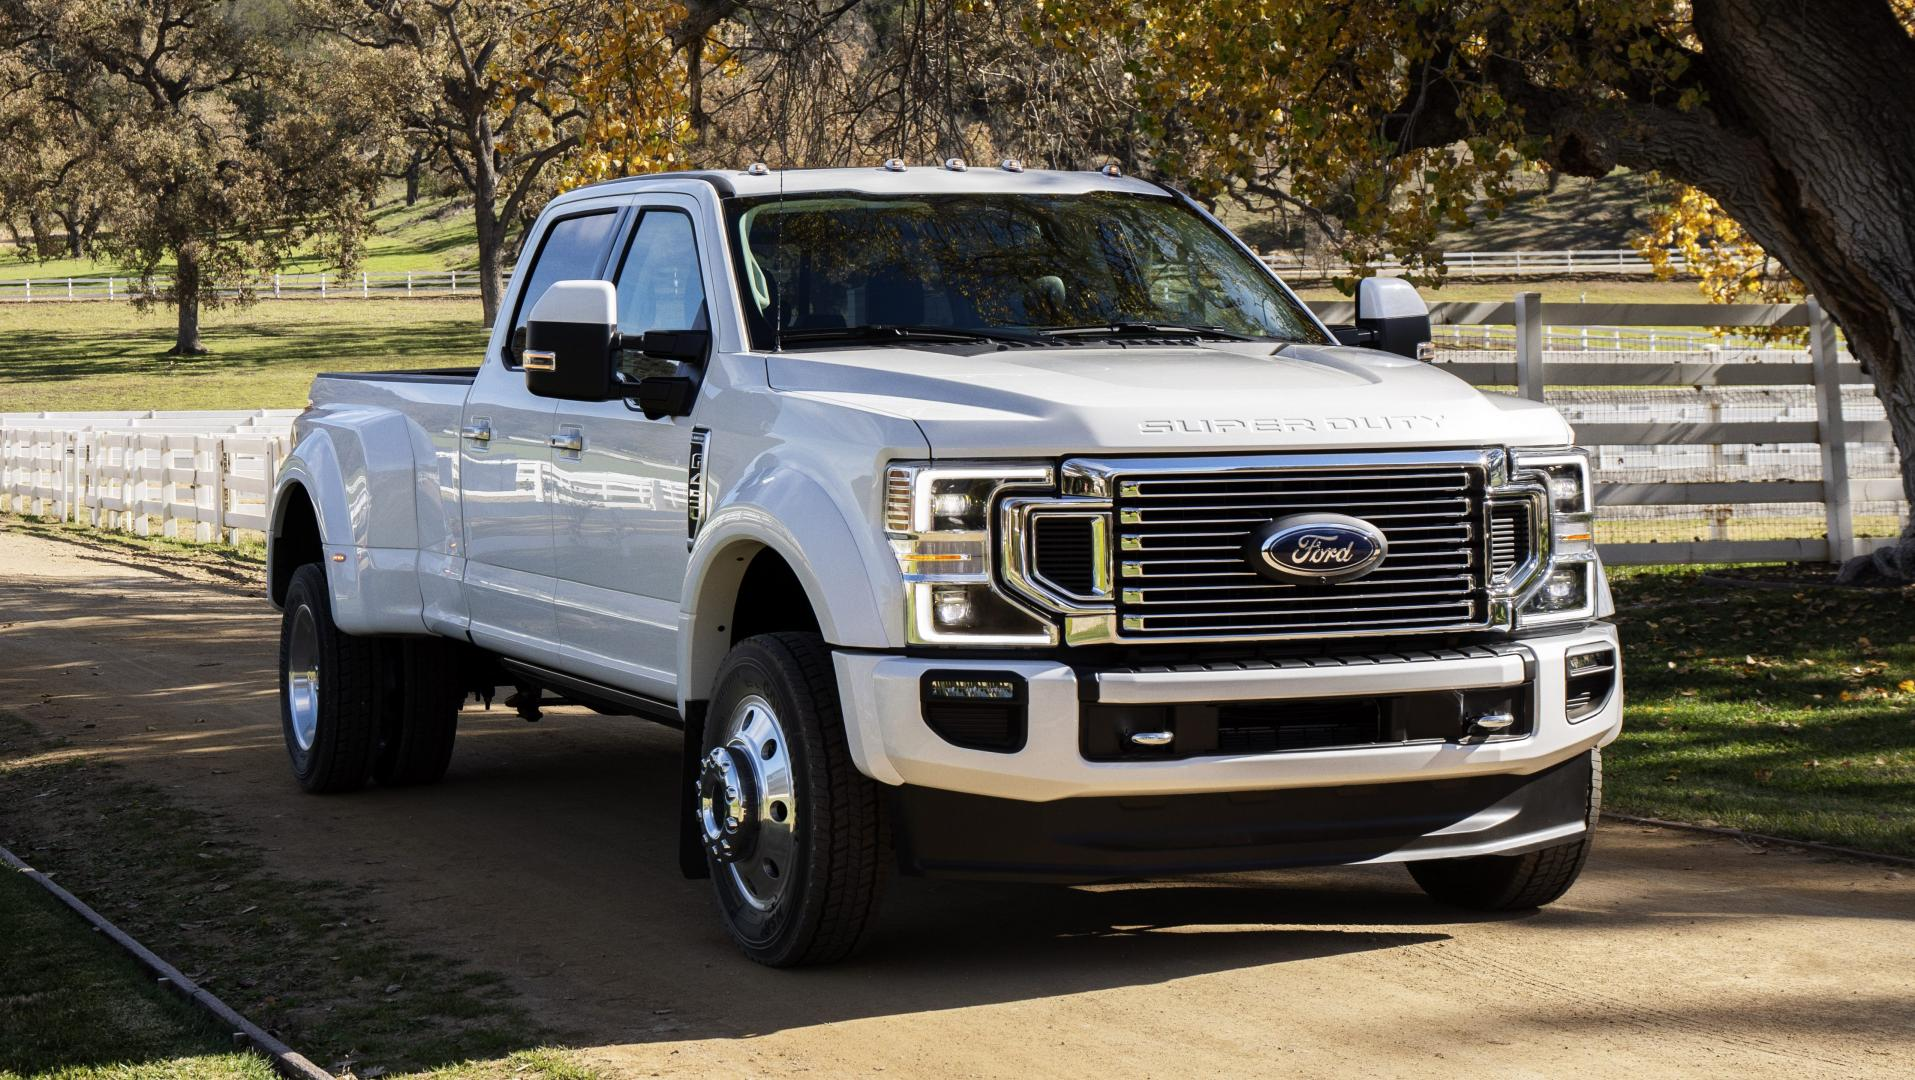 Ford F-series Super DutyFord F-series Super Duty 7,3-liter v8